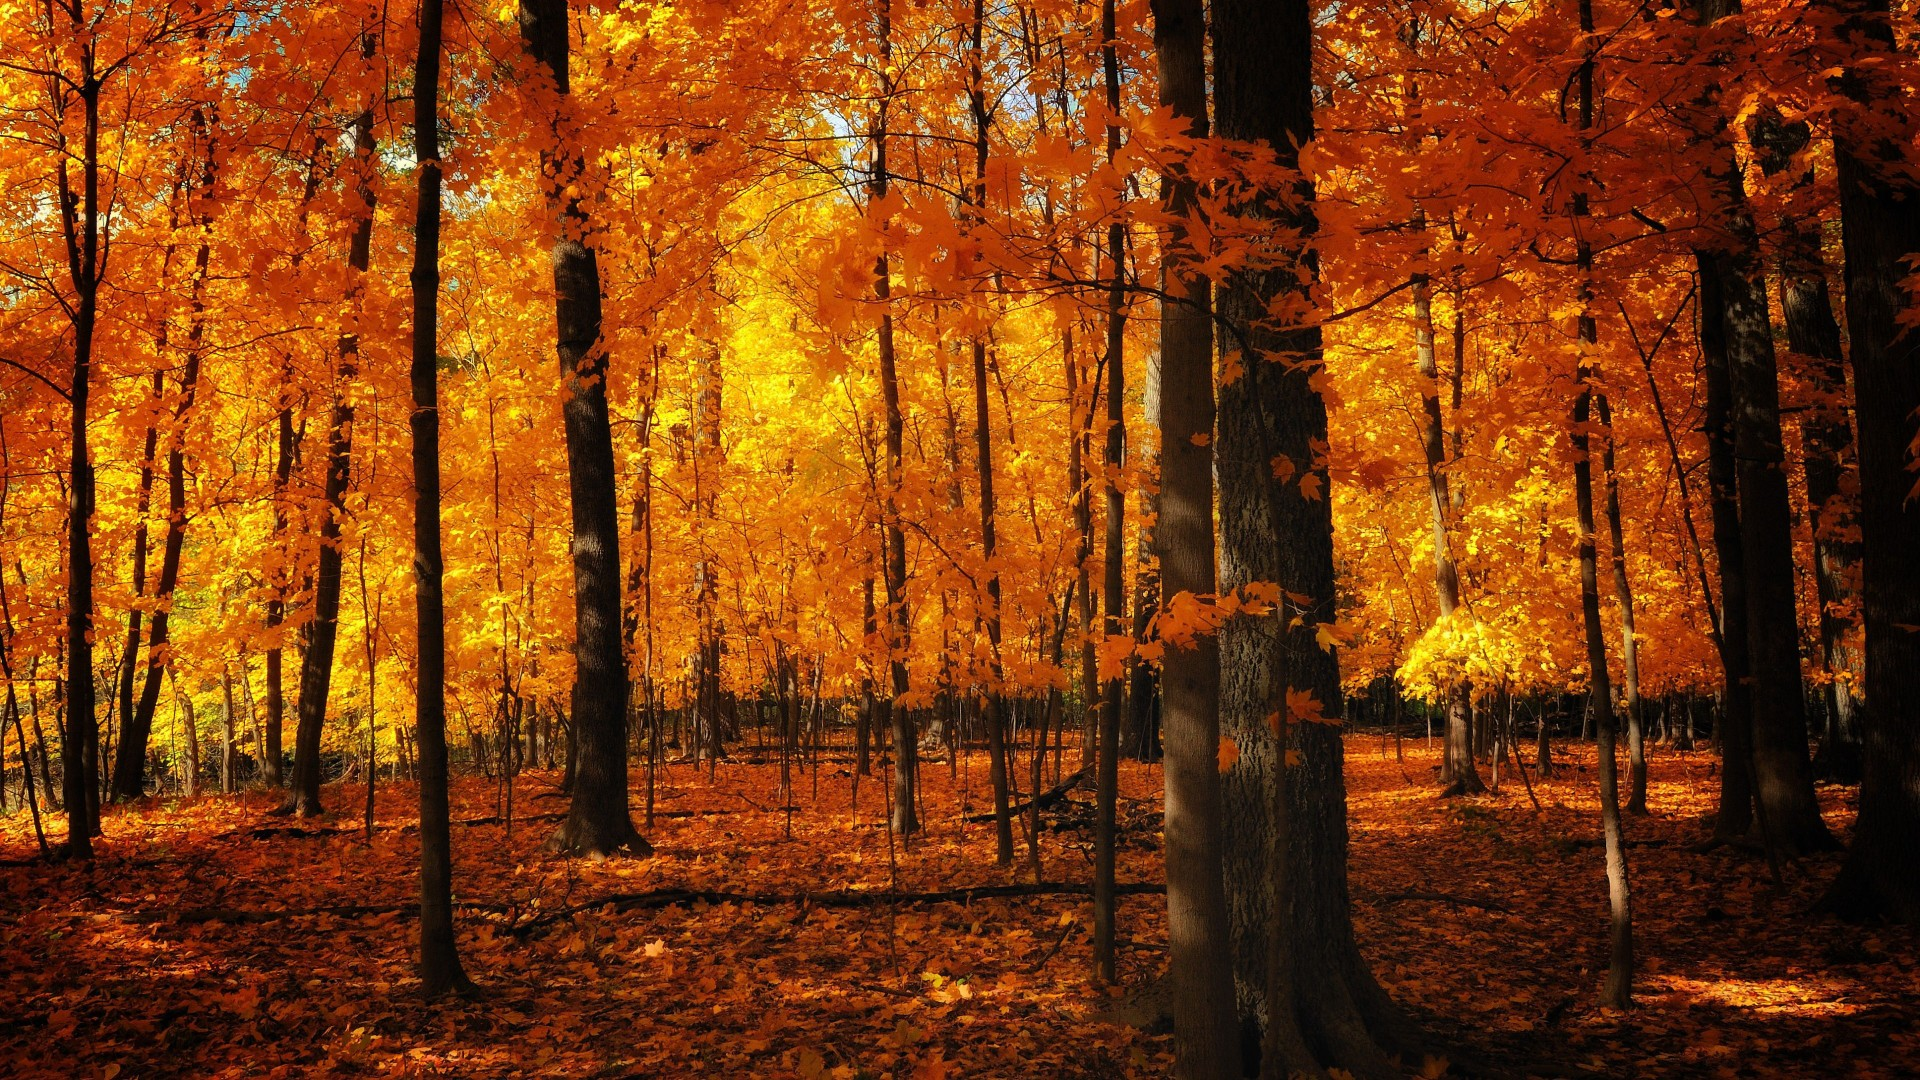 Ever snapped me this video idea for a tutorial! Orange Leafed Autumn Trees 4K HD Orange Aesthetic